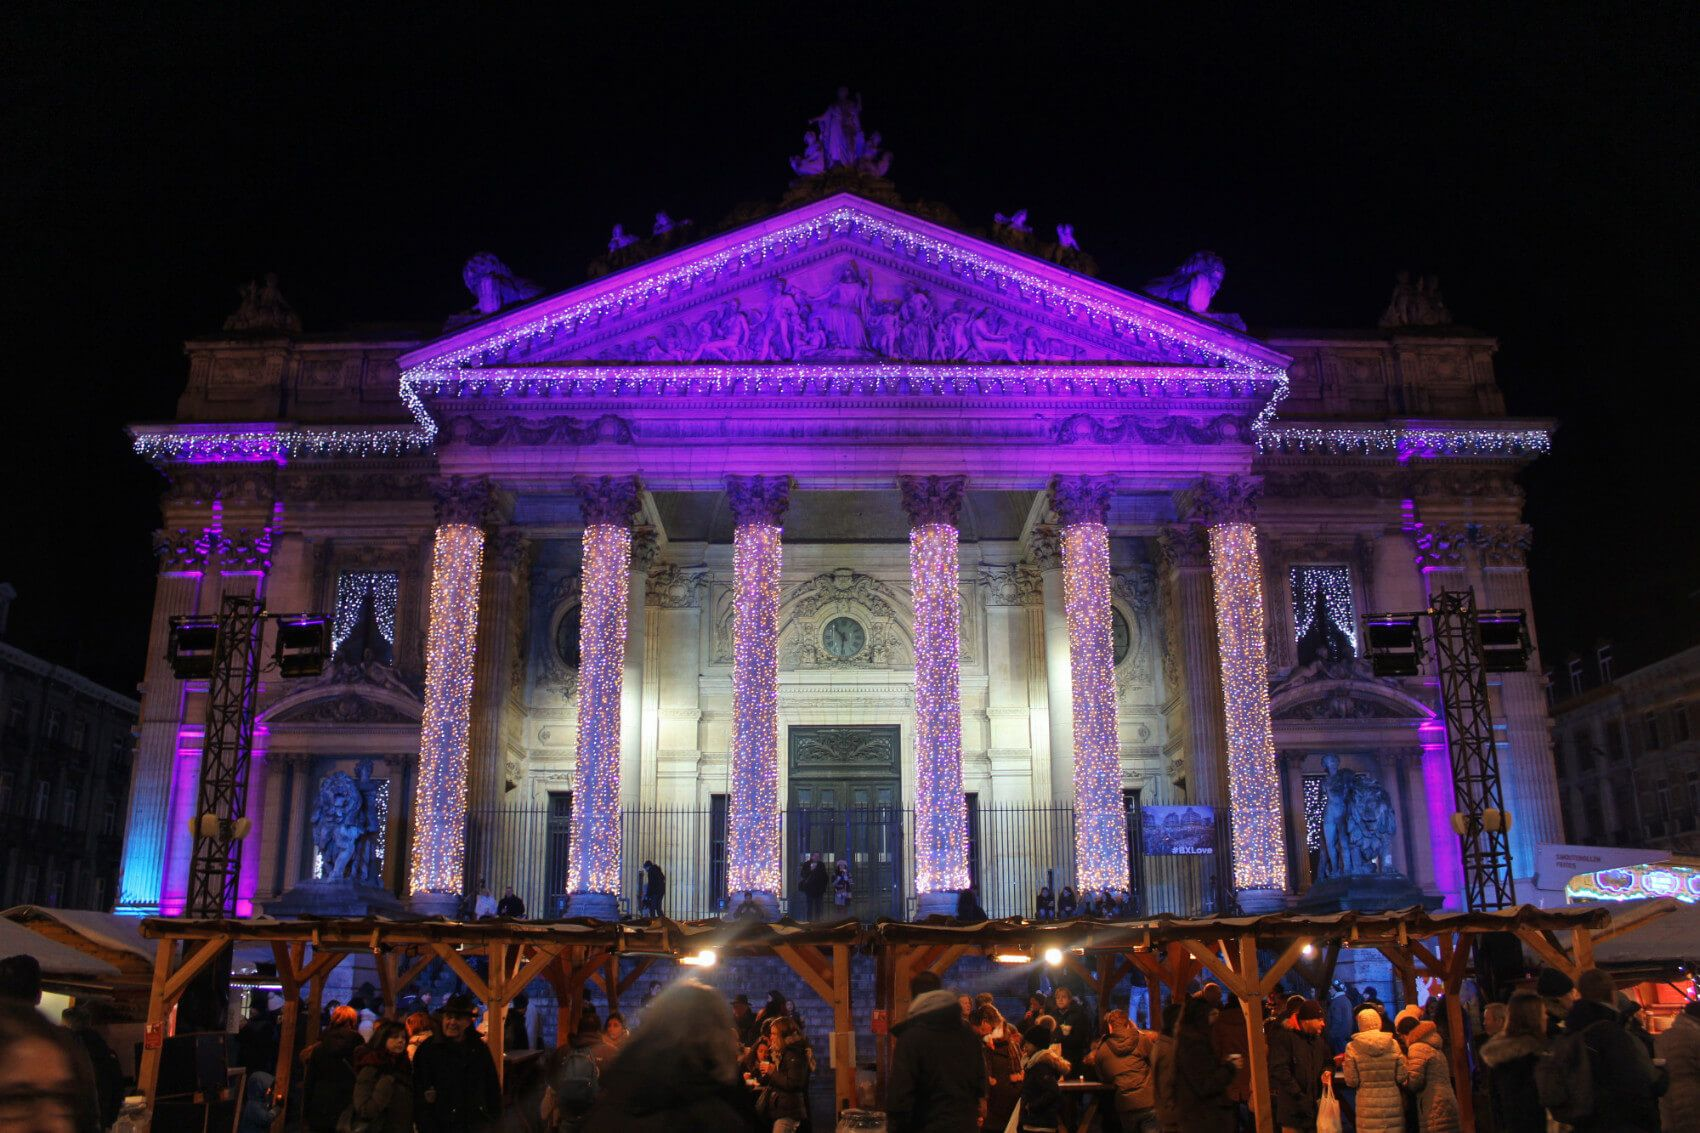 The Brussels Stock Exchange lit up for the winter holidays in Brussels, Belgium.